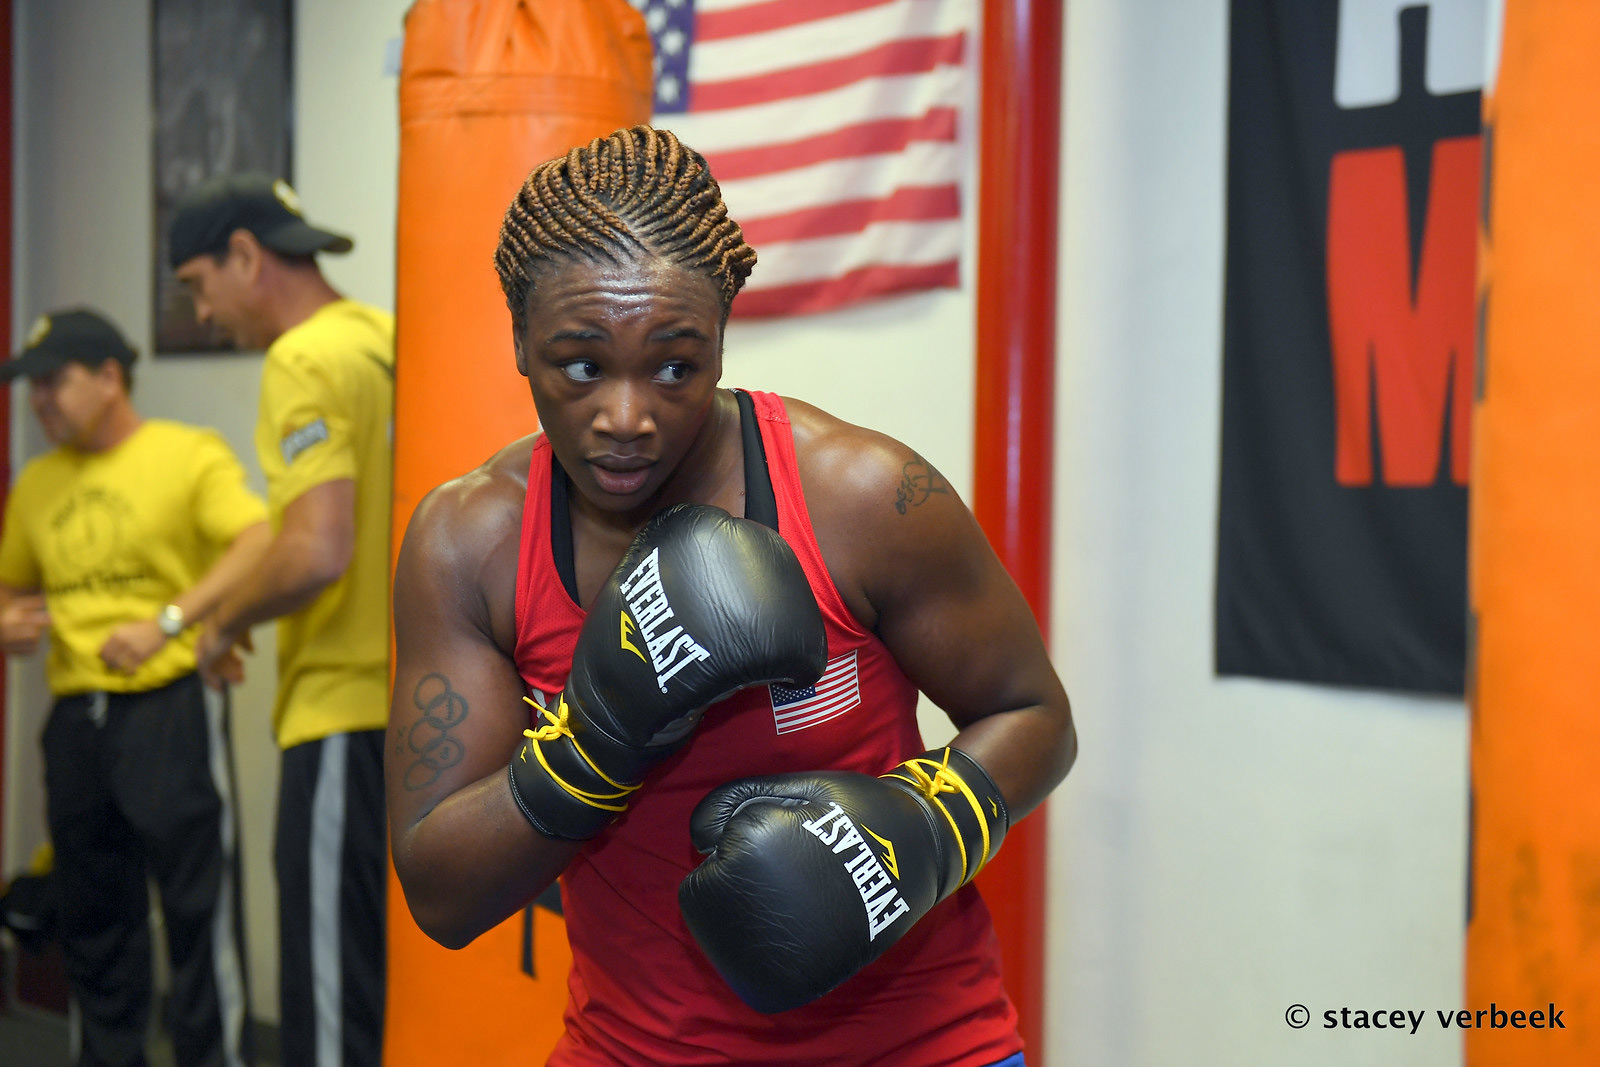 claressa shields hopes to revive women s boxing with pro. Black Bedroom Furniture Sets. Home Design Ideas